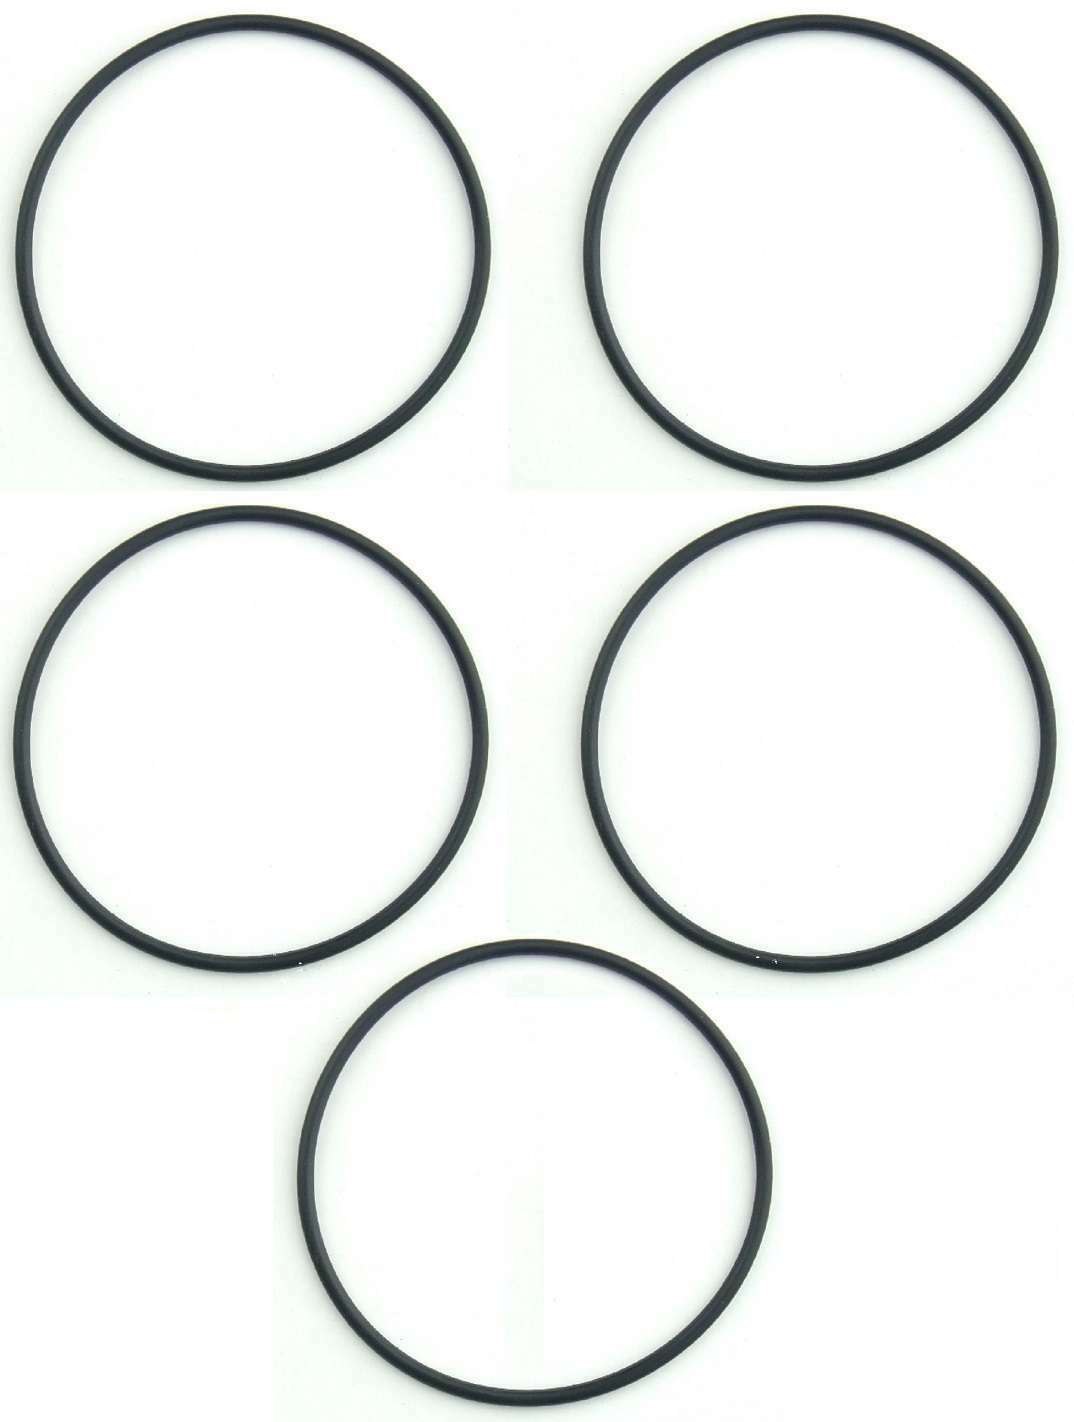 5 x Rubber ring for Snap Brackets Brackets Mounting Bracket Clamp O